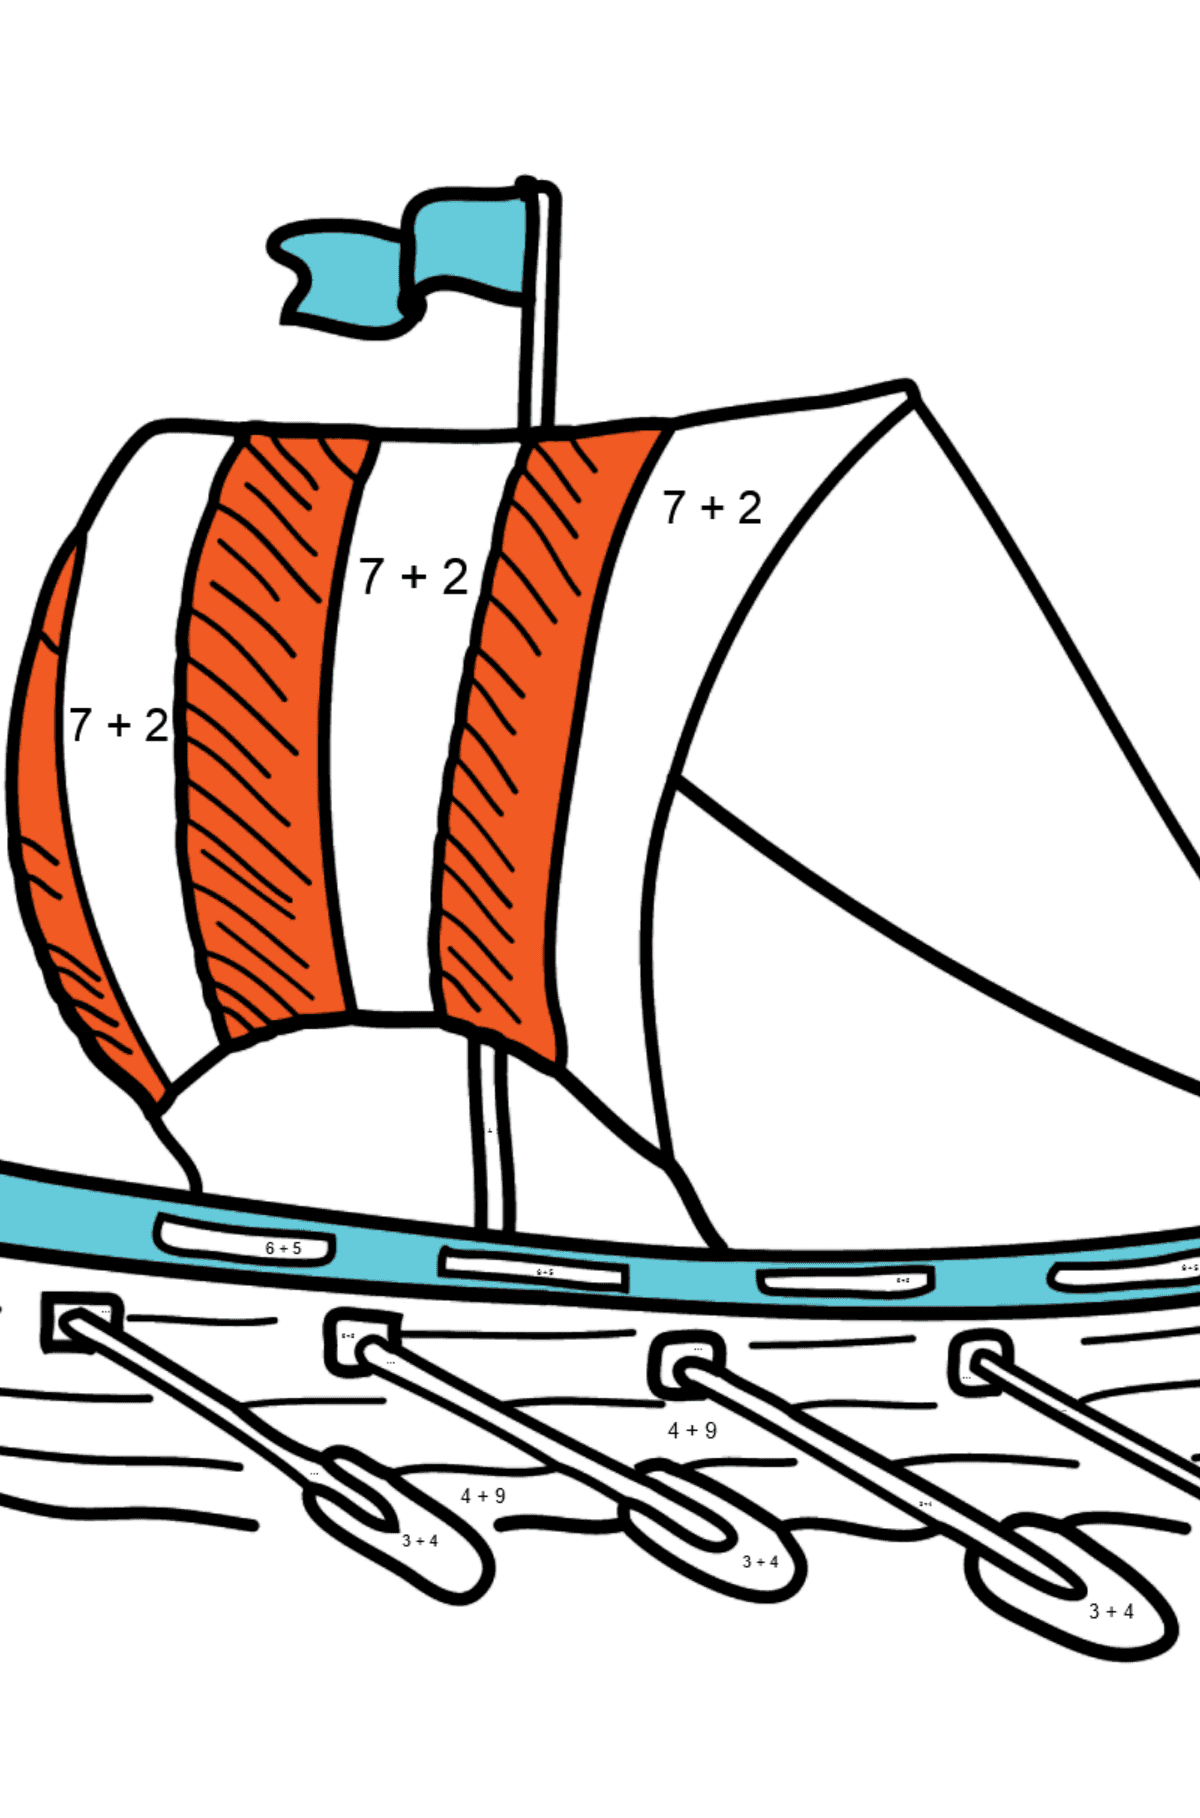 Coloring Page - A River Rowing Boat - Math Coloring - Addition for Kids